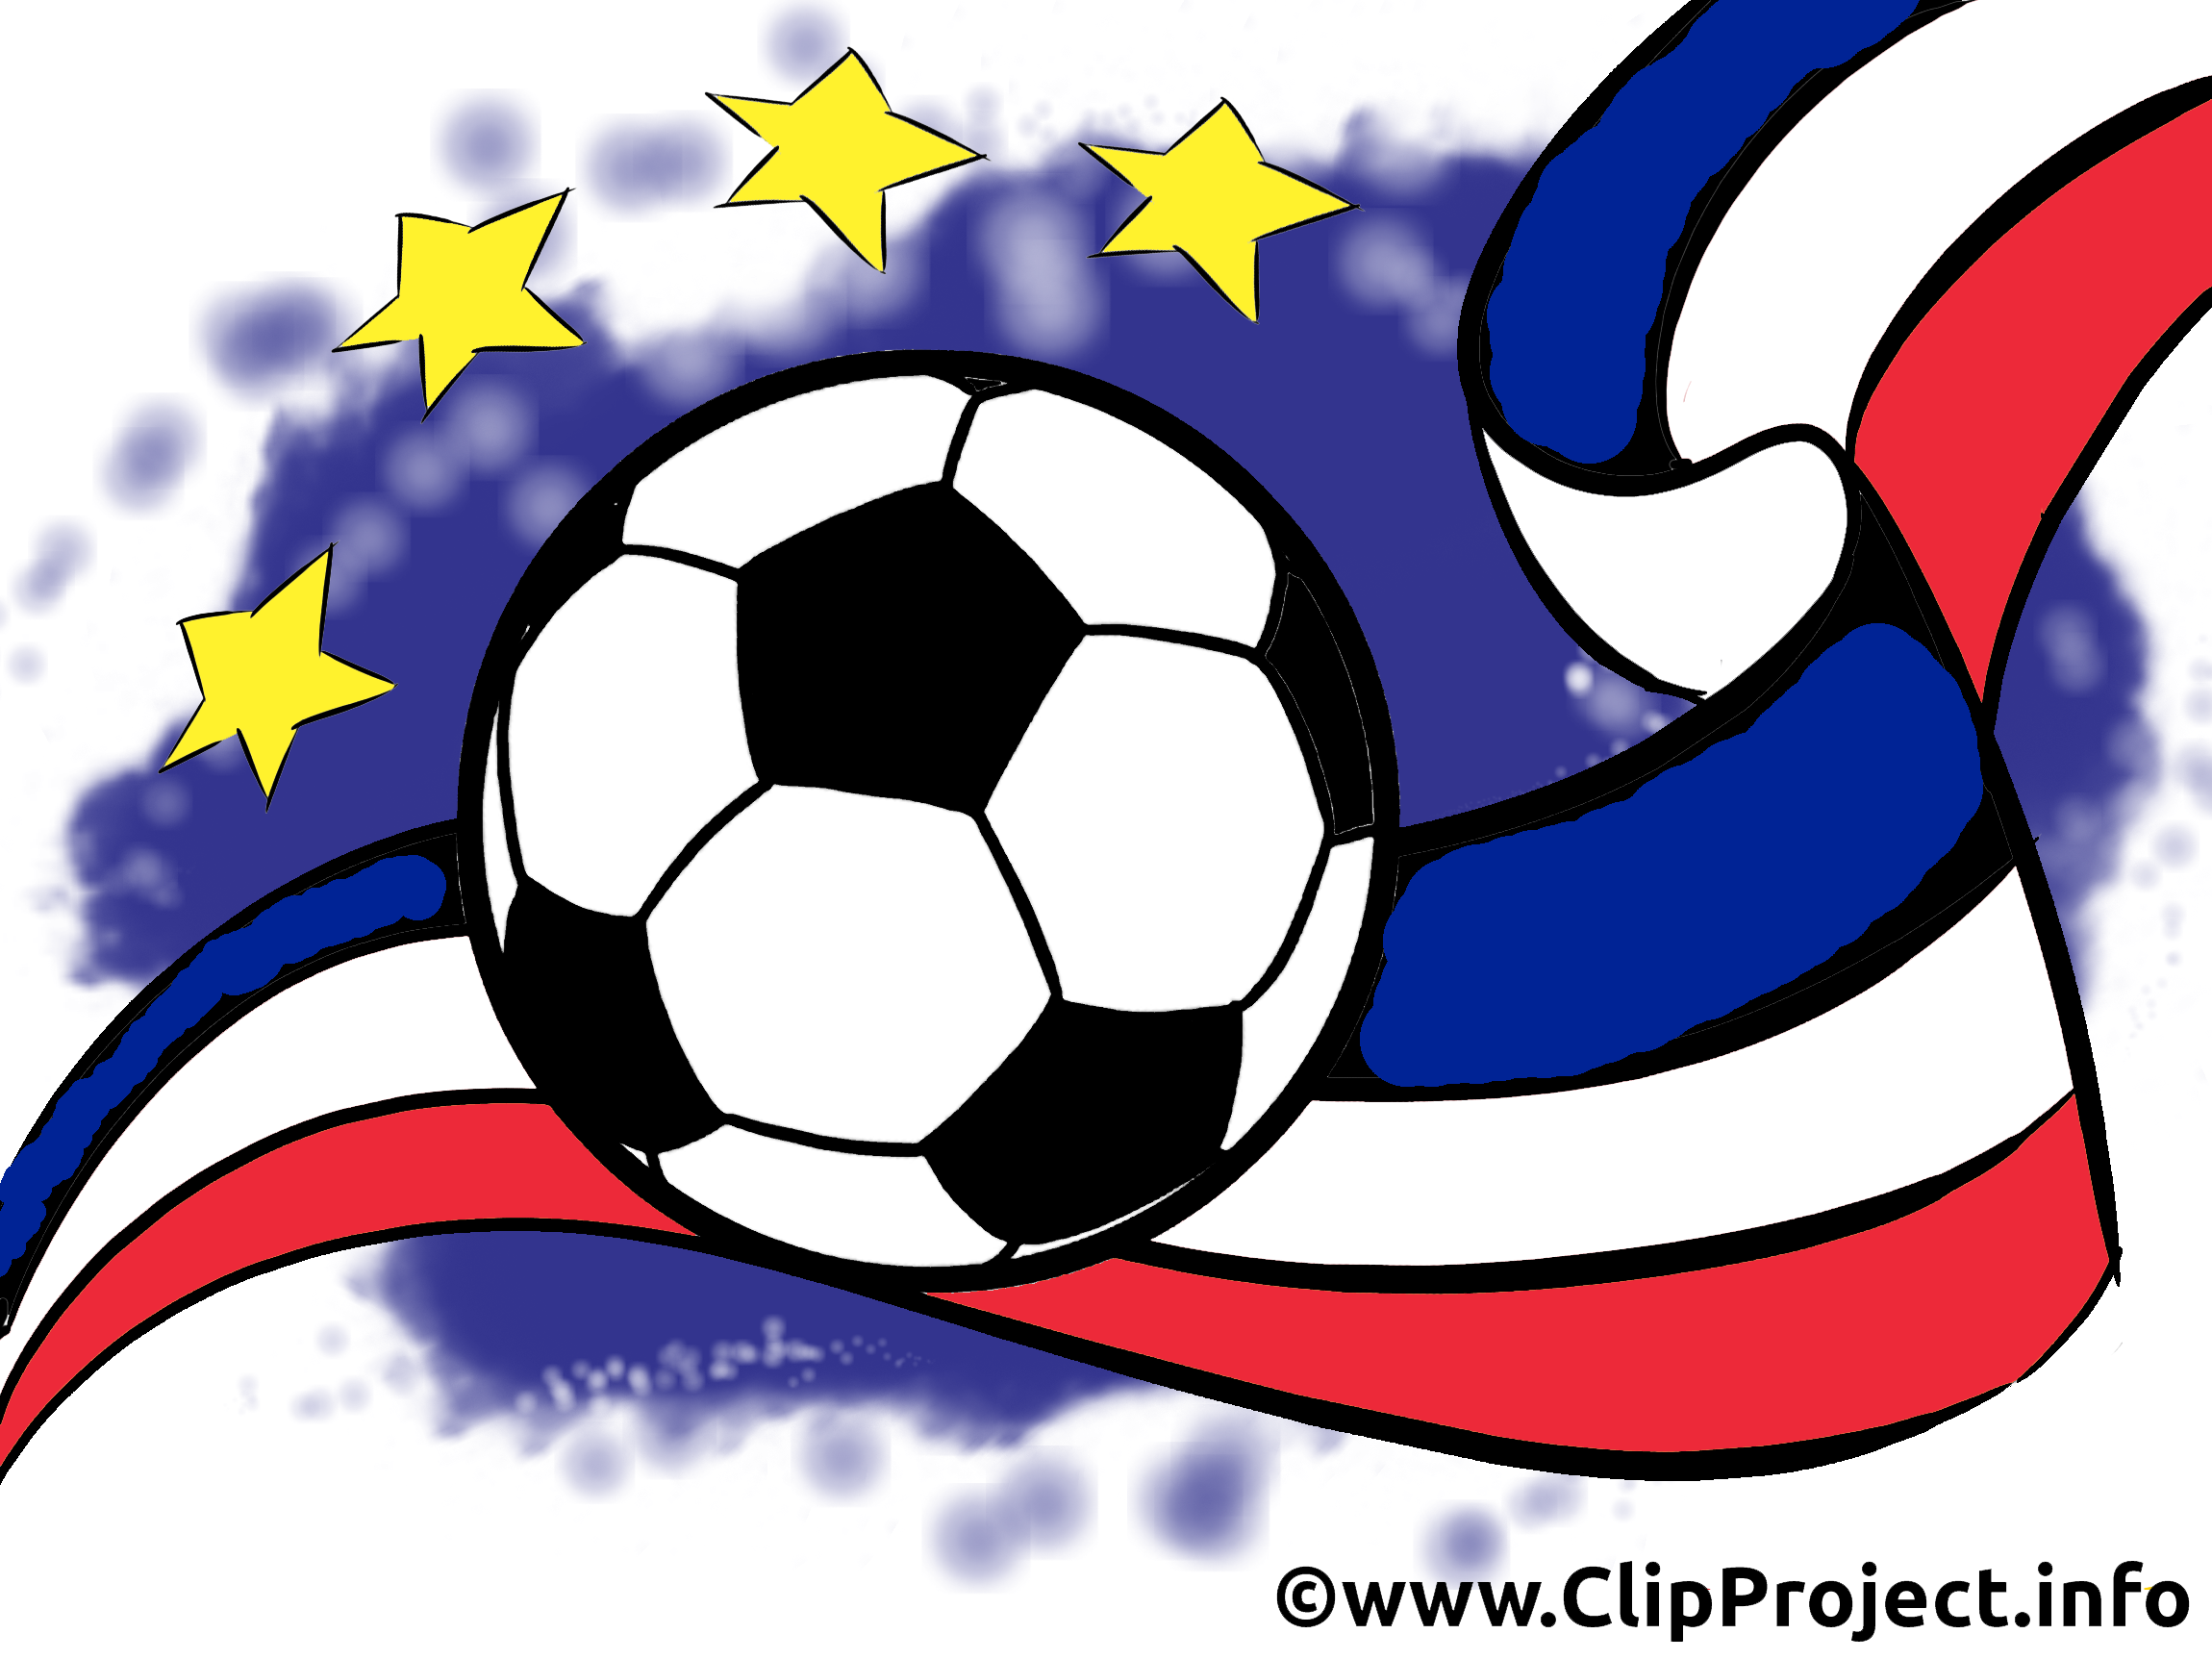 Ballon de foot image gratuit football dessin picture image graphic clip art t l charger - Dessin de ballon de foot ...